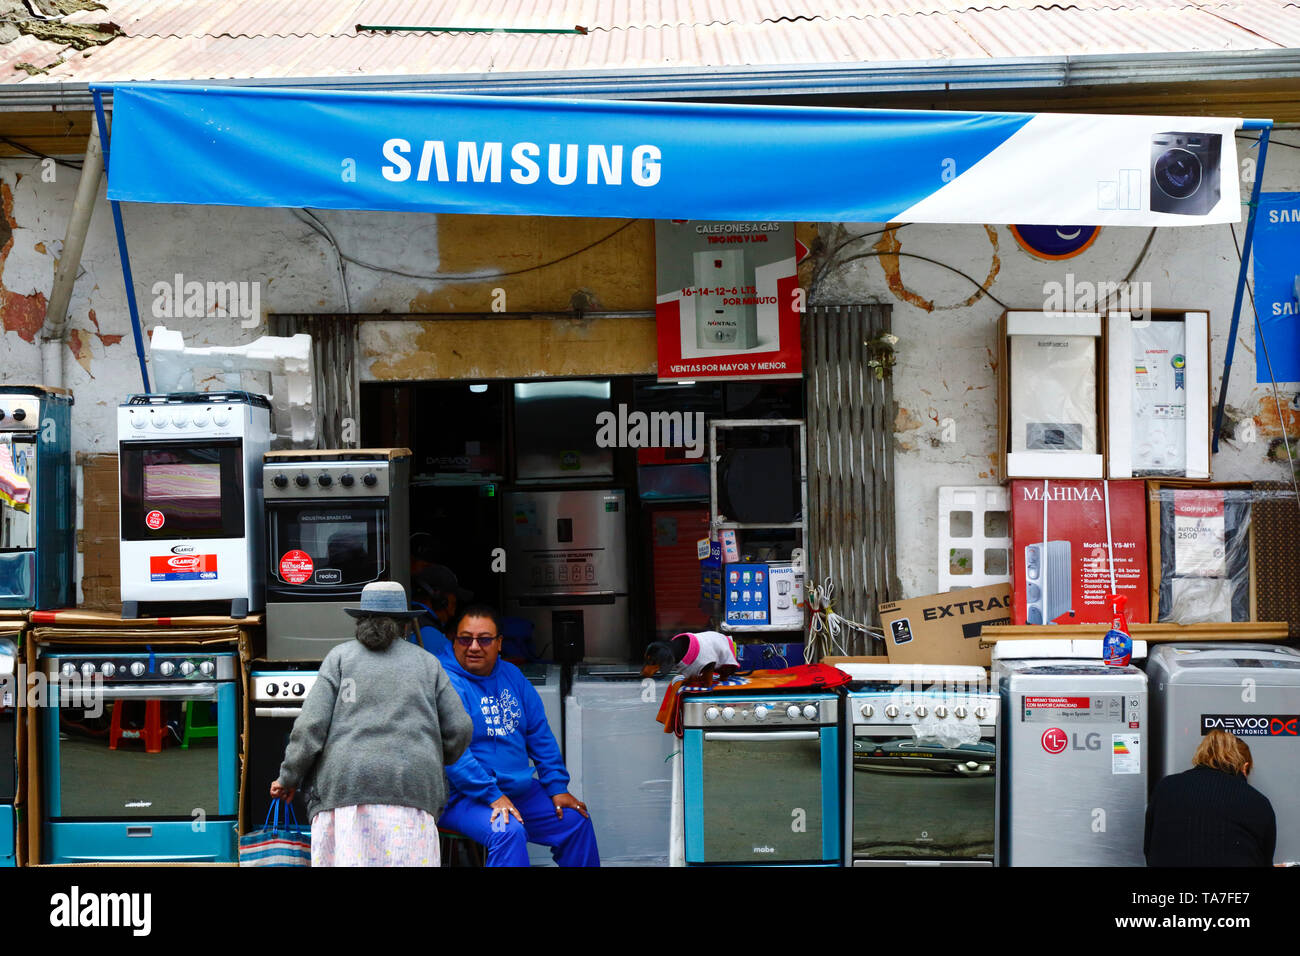 Samsung shop selling cookers and other kitchen appliances in contraband electronics market area, La Paz, Bolivia - Stock Image